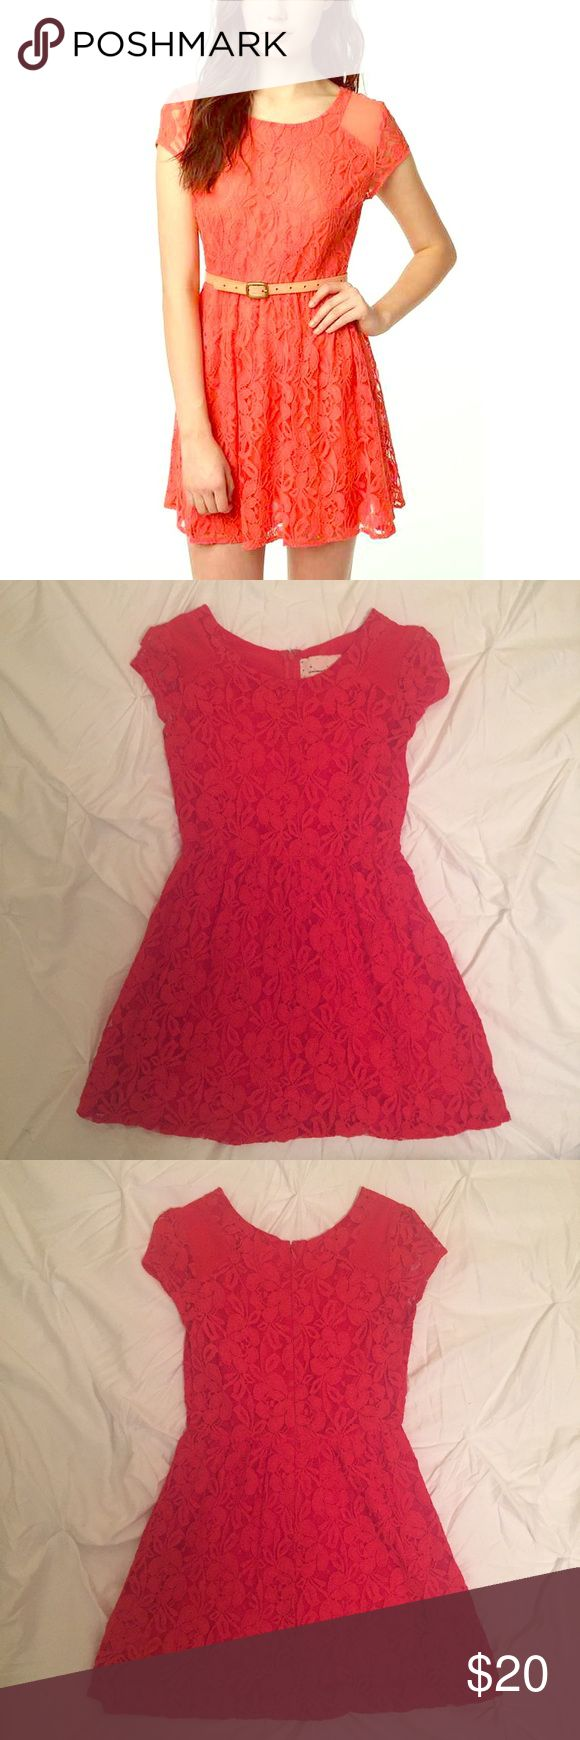 UO Coral Lace Dress 👗 Coincidence + Chance Revel Dress from Urban Outfitters. Bright orangey-red coral lace dress with cap sleeve and flattering a-line shape. Gently worn, perfect condition! Urban Outfitters Dresses Mini